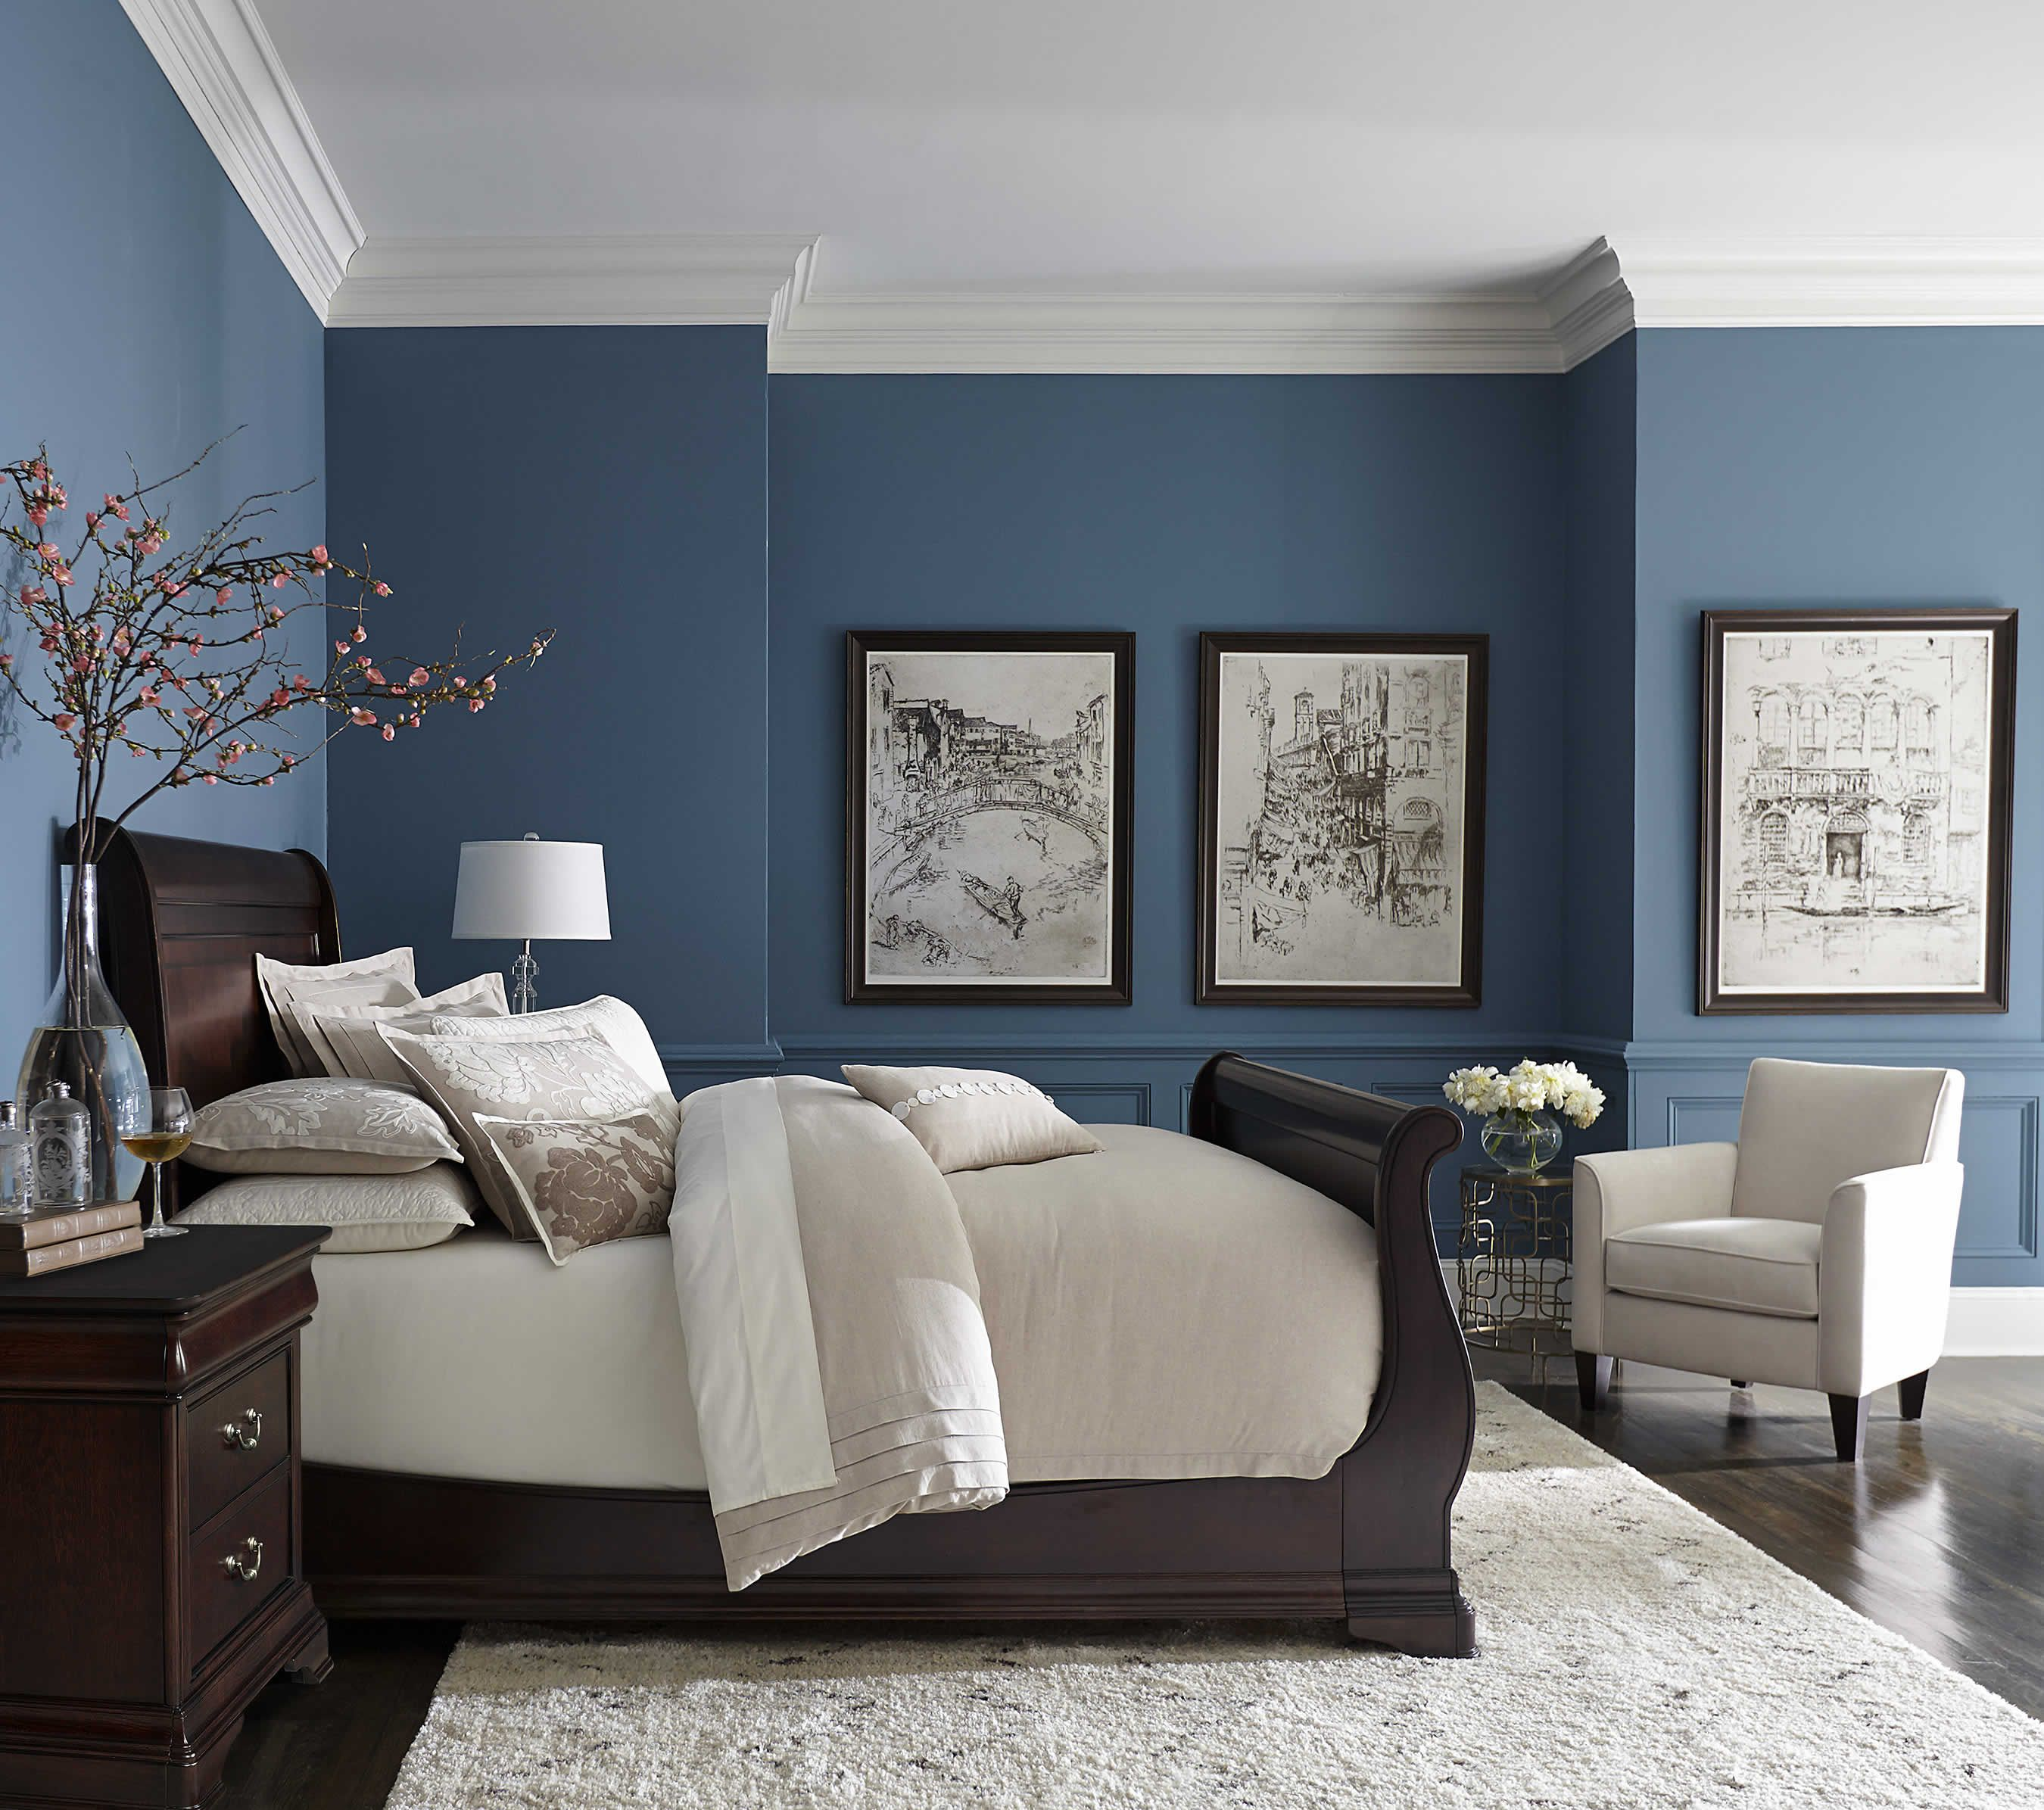 Dream Master Bedroom Design Ideas 92 Blue Dark Walls